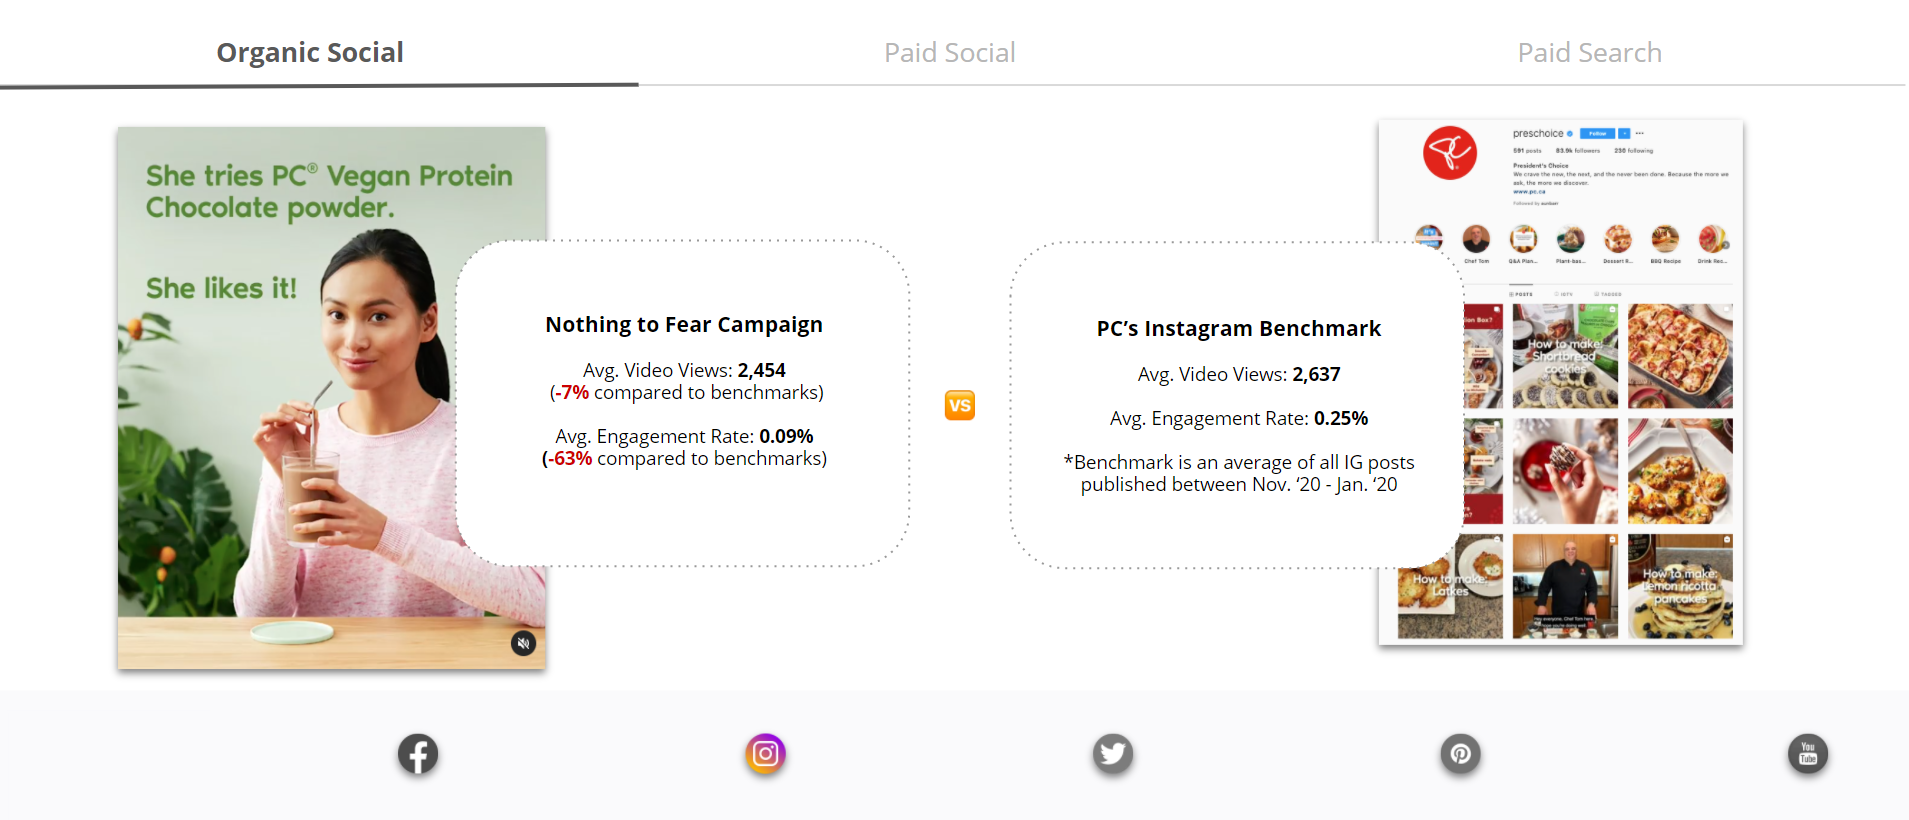 Comparison of Nothing to Fear campaign with PC's Instagram Benchmark